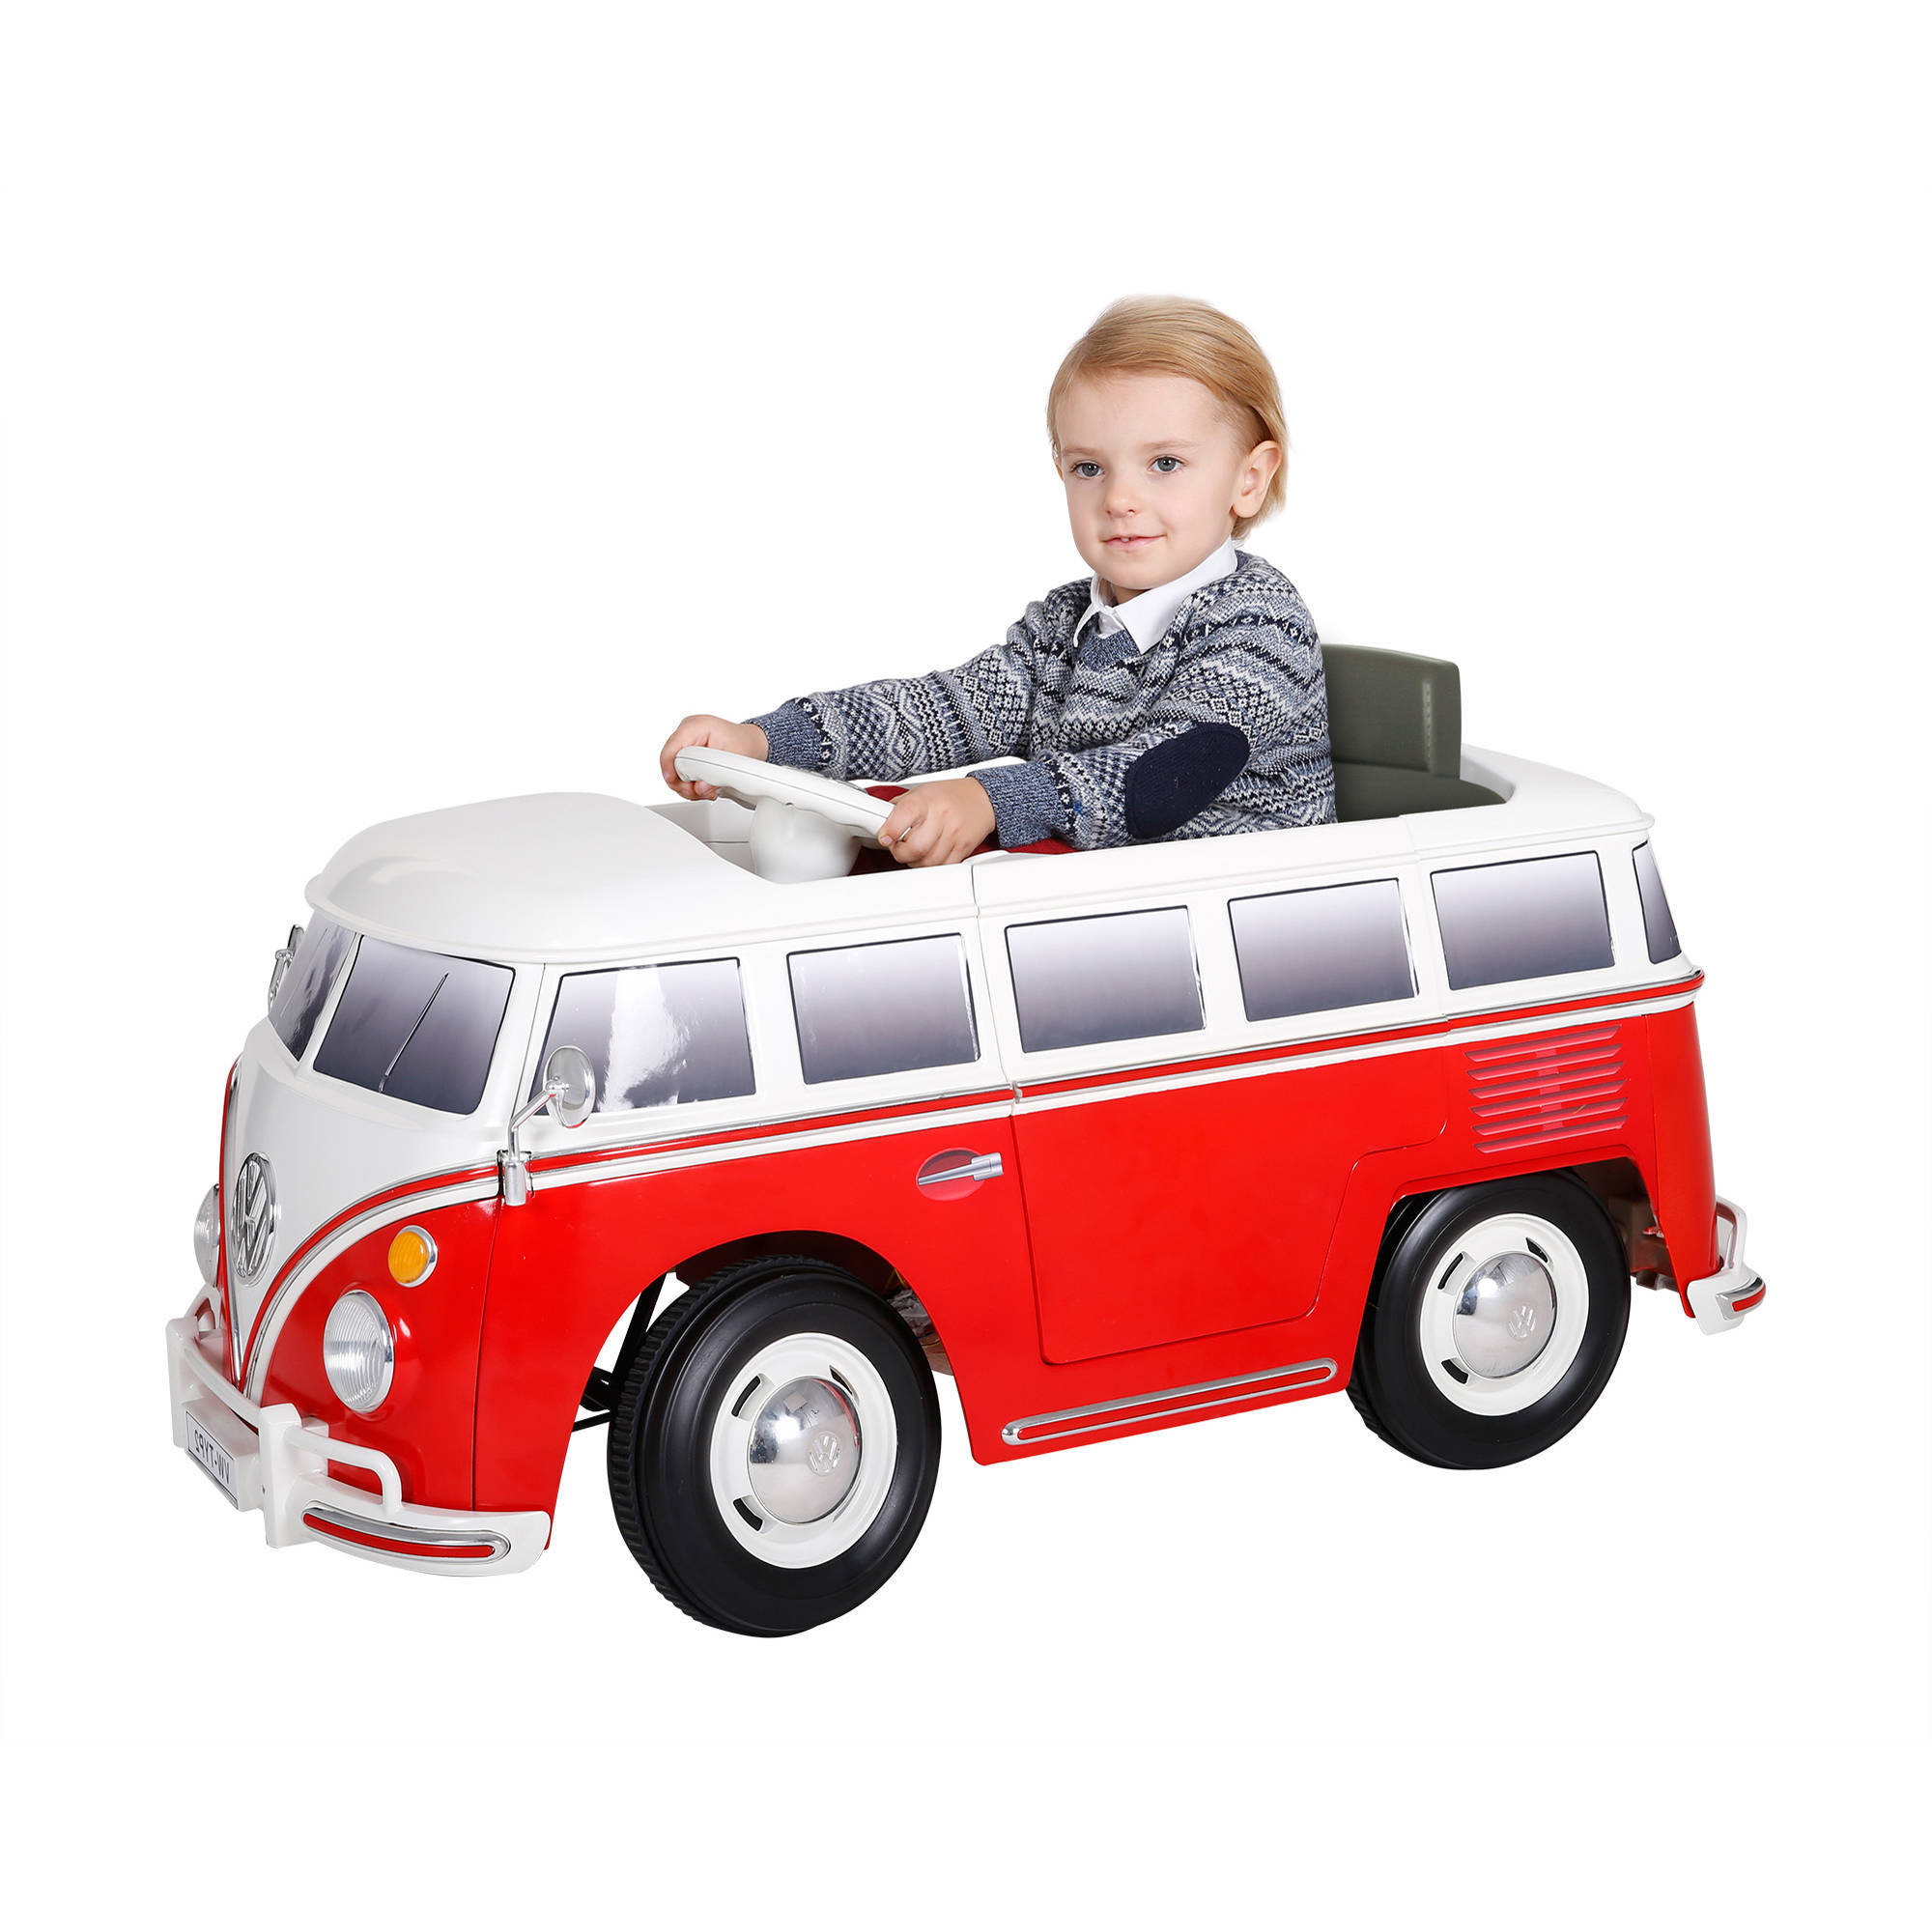 Rollplay VW Bus 6 Volt Battery Ride-On Vehicle